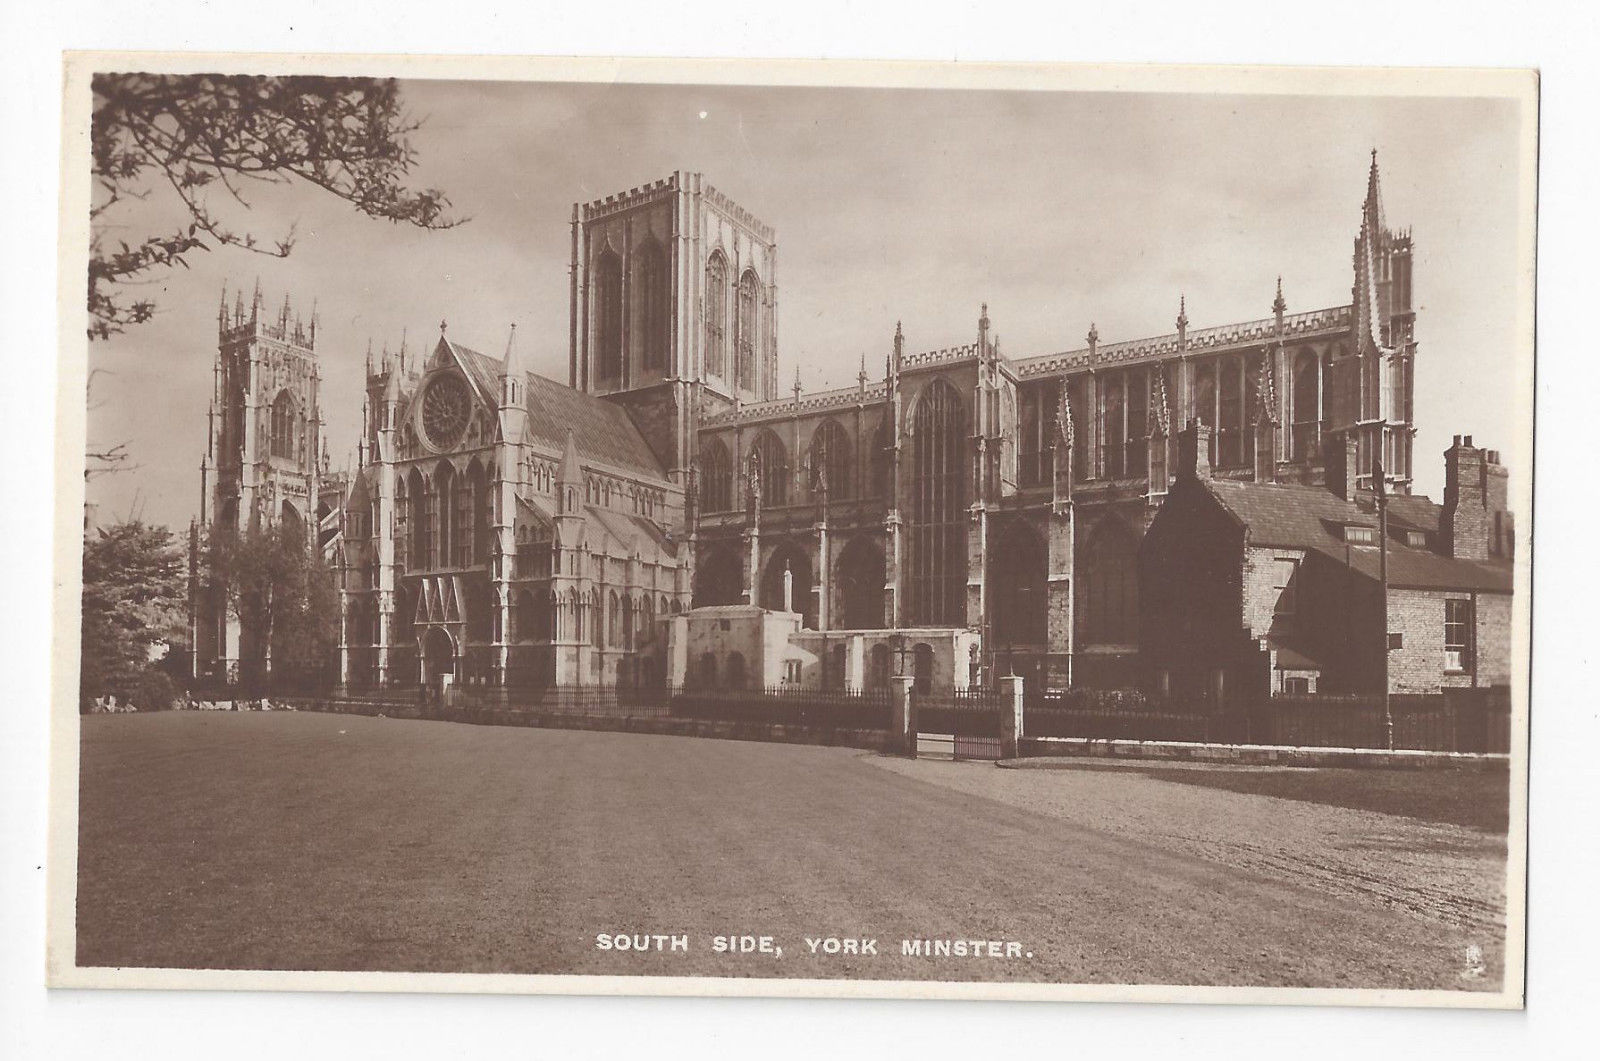 UK York Minster Cathedral South Side RPPC Raphael Tuck Real Photo Postcard